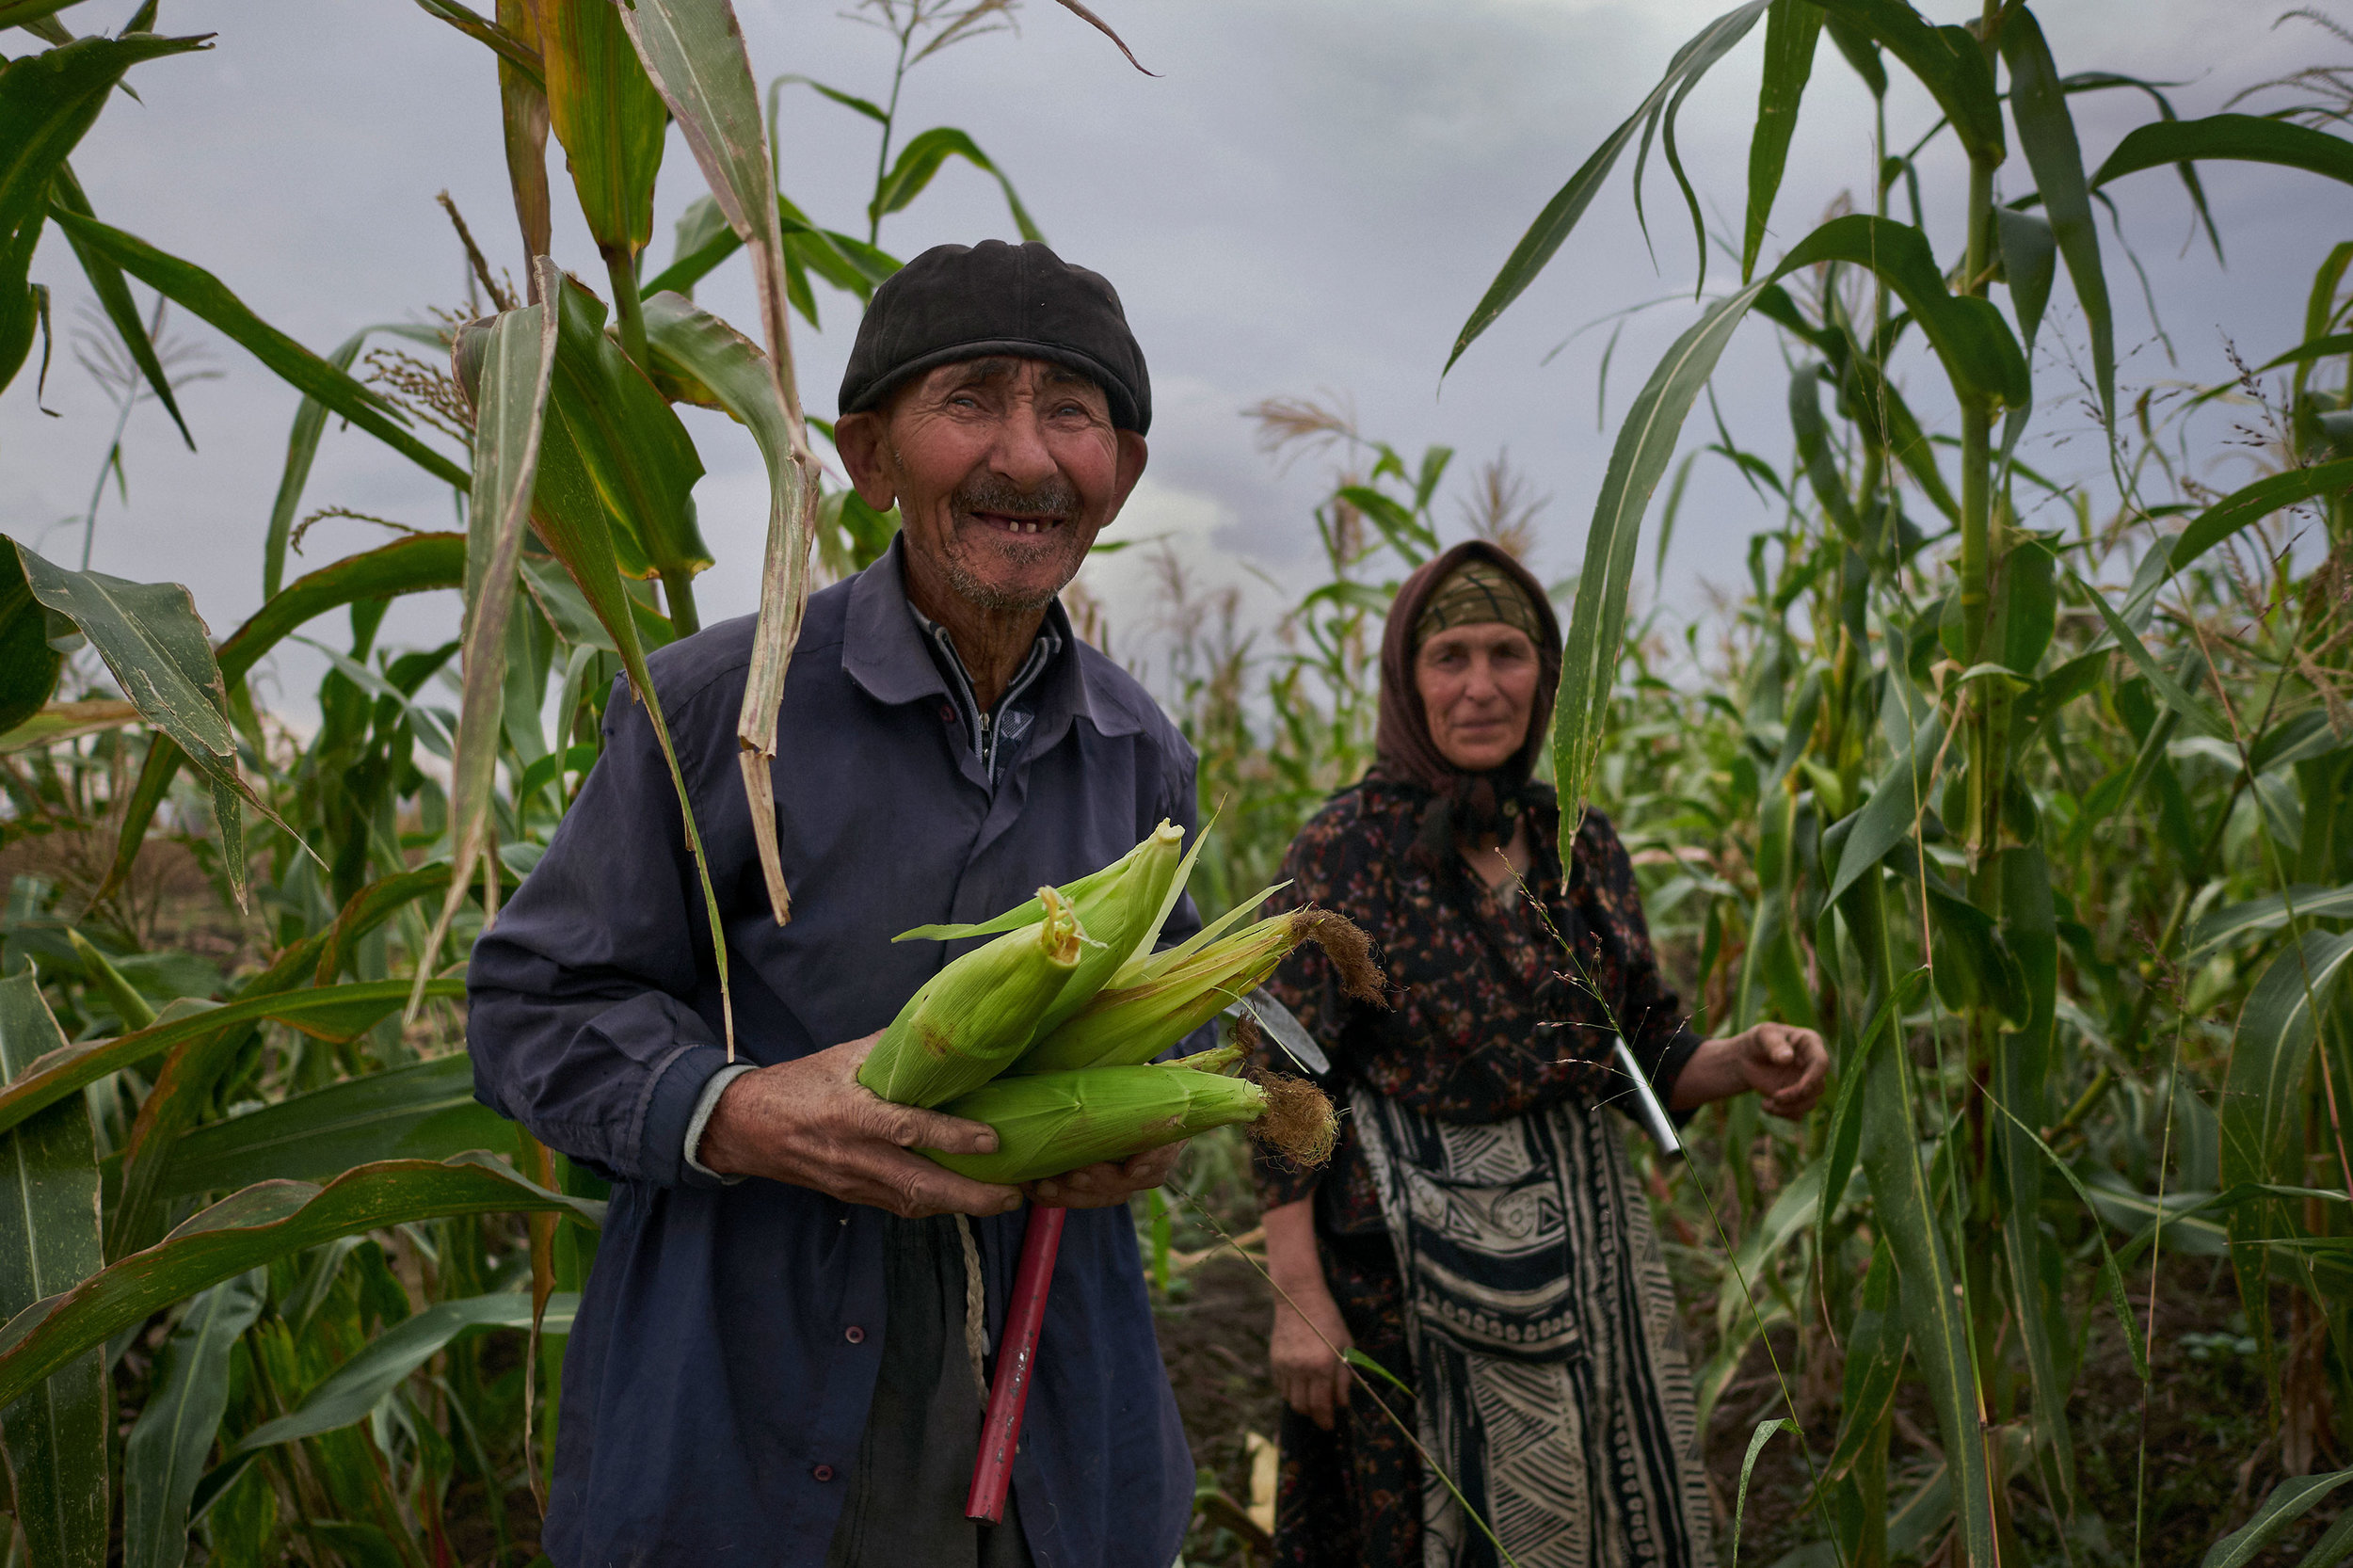 Elderly man and woman in a corn field